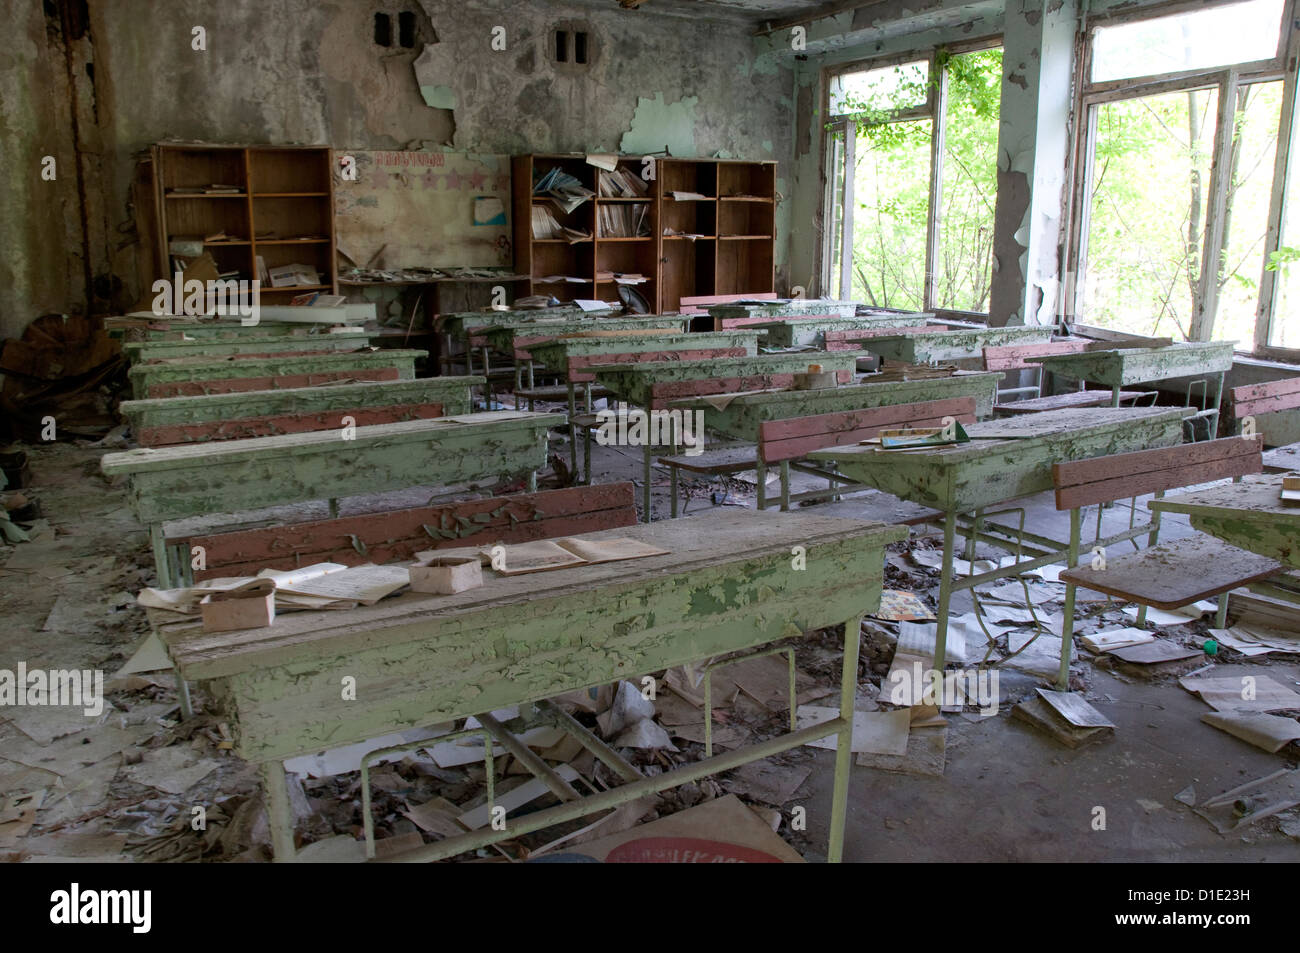 Chernobyl disaster results. This is classroom in abandoned school in small city Pripyat - Stock Image